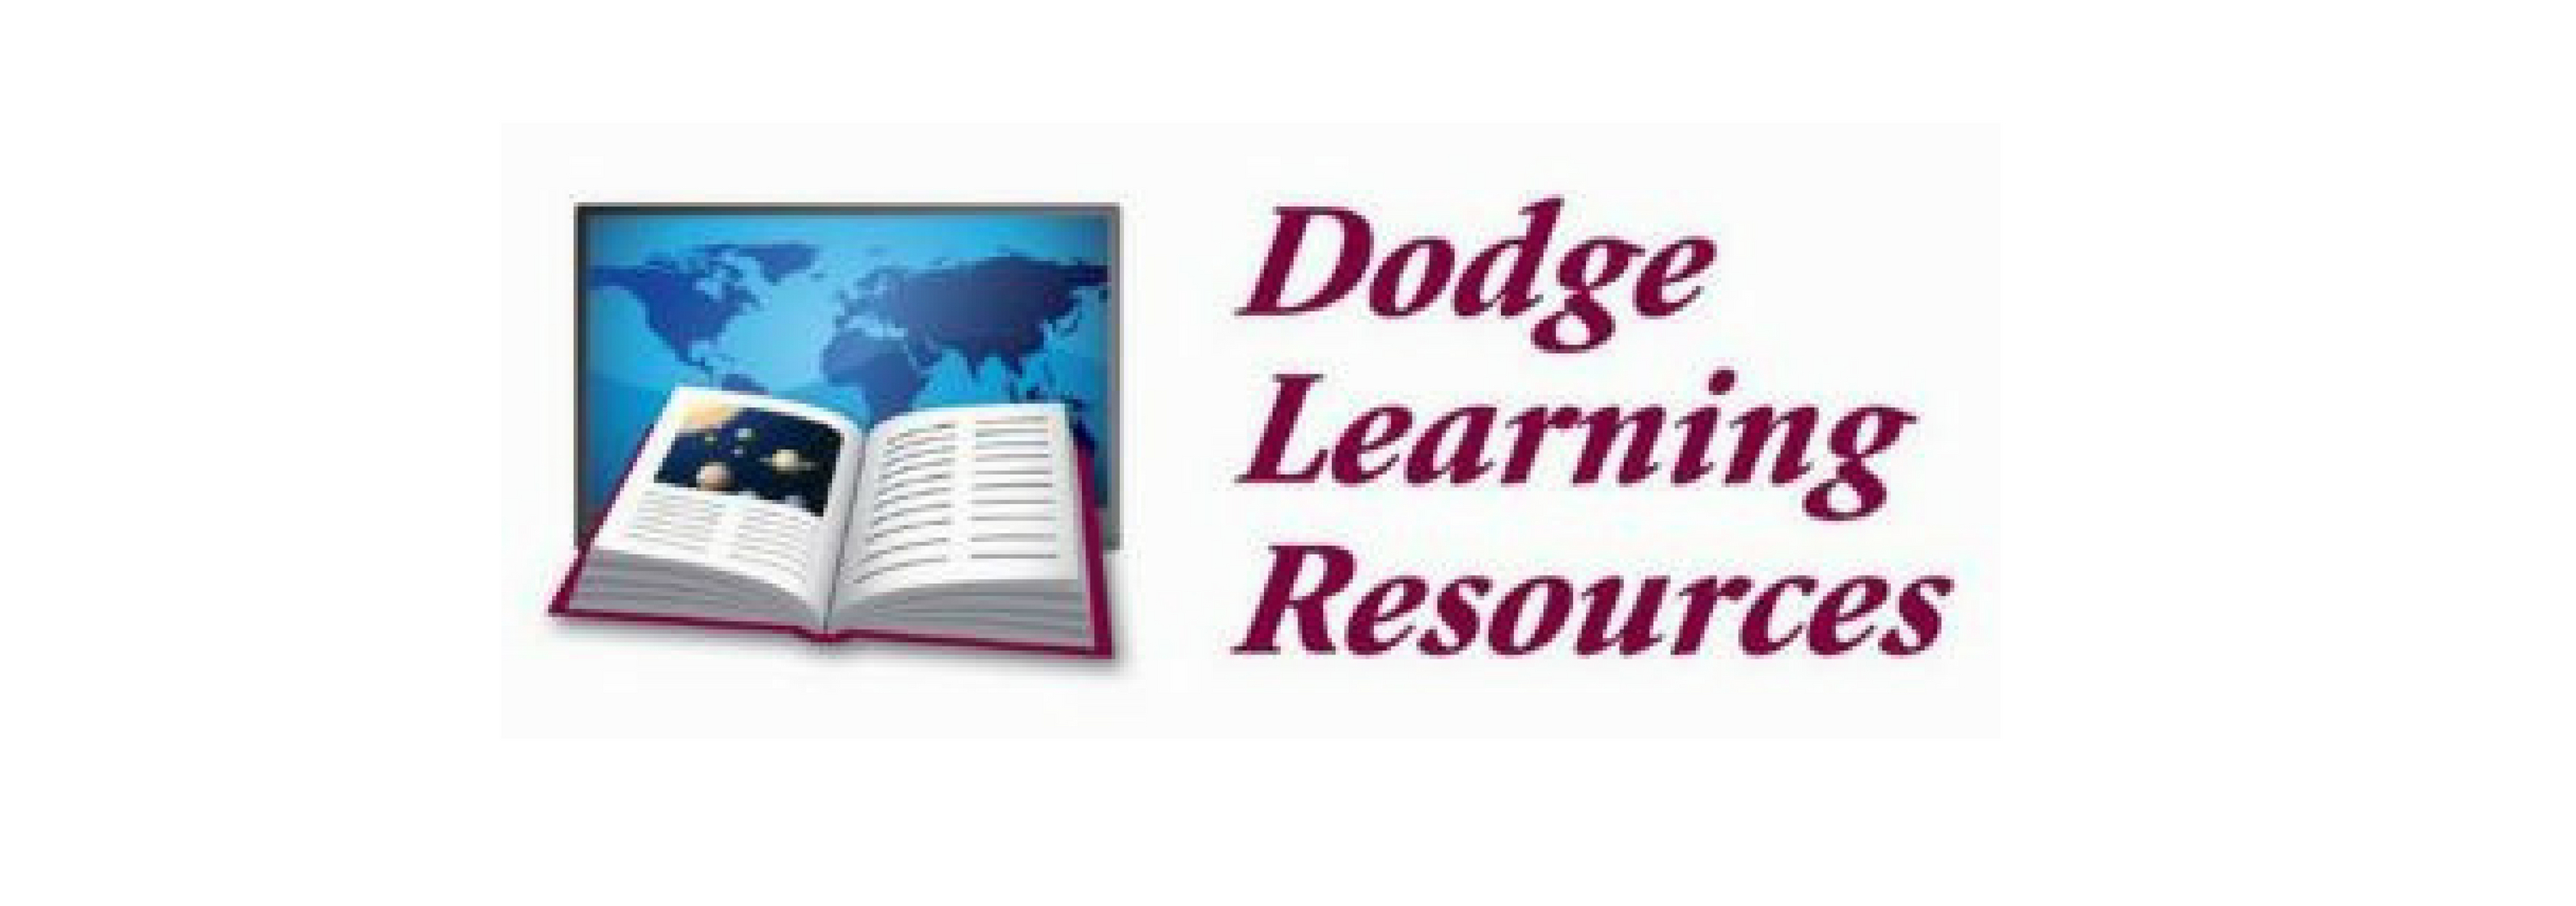 Image result for dodge learning resources